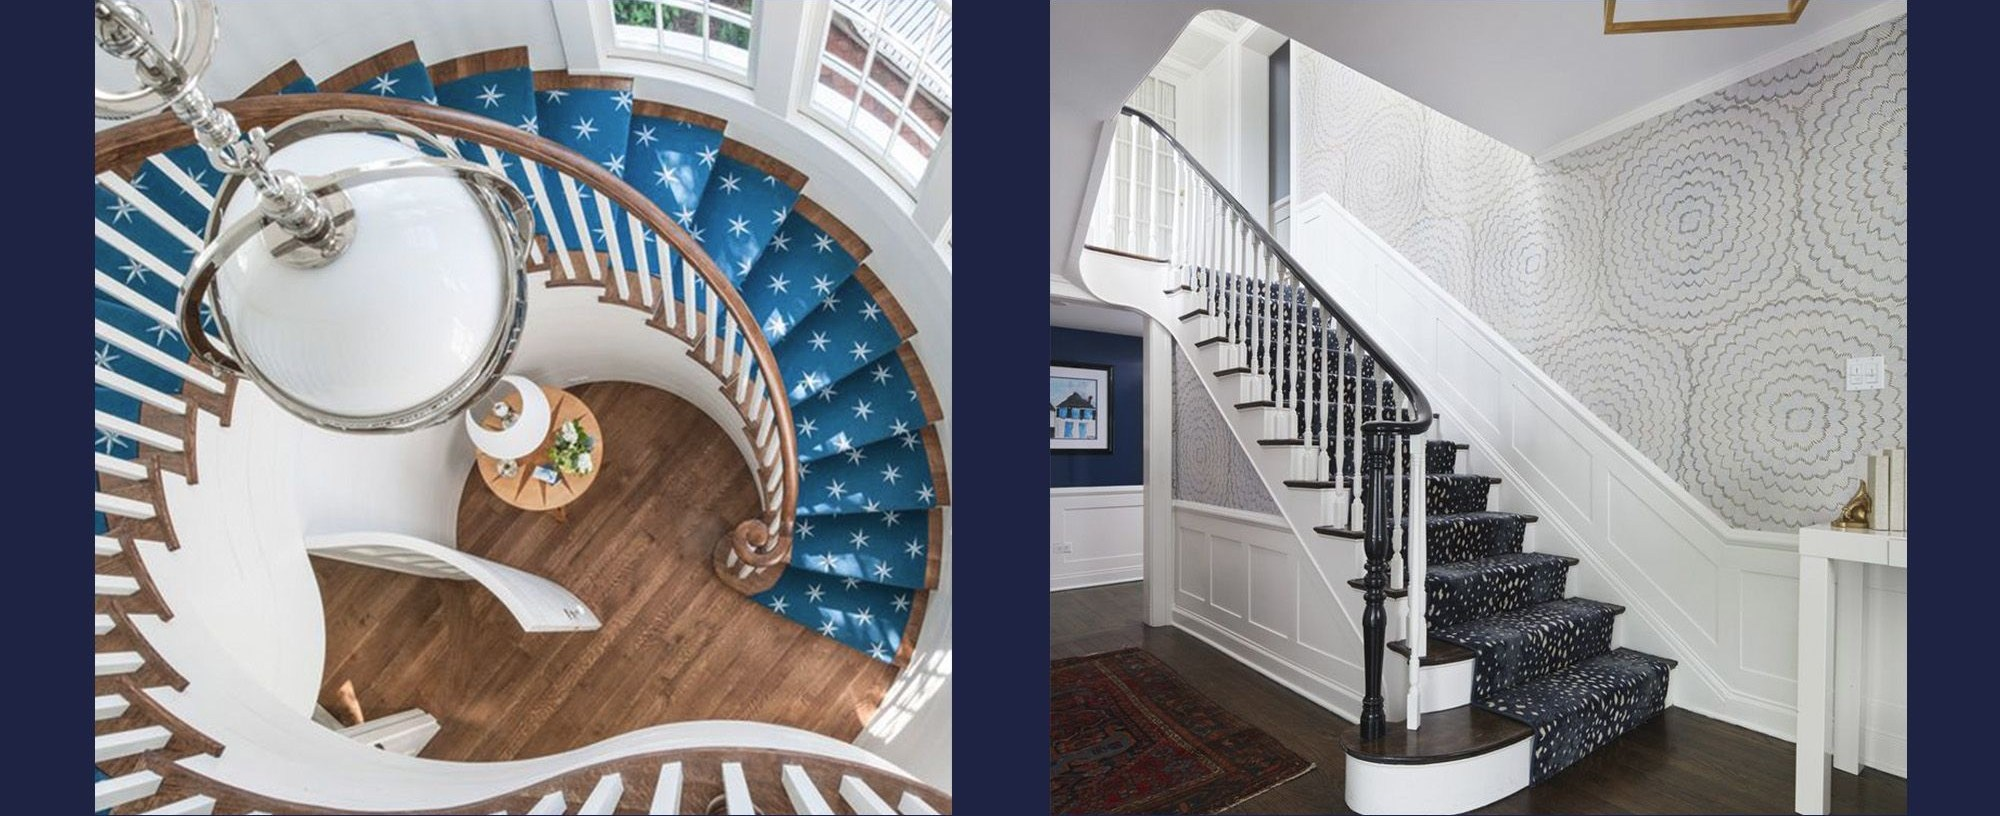 25 Stunning Carpeted Staircase Ideas Most Beautiful Staircase | Floral Carpet For Stairs | Modern | Brown Pattern | Pattern | Laminate | Diamond Pattern